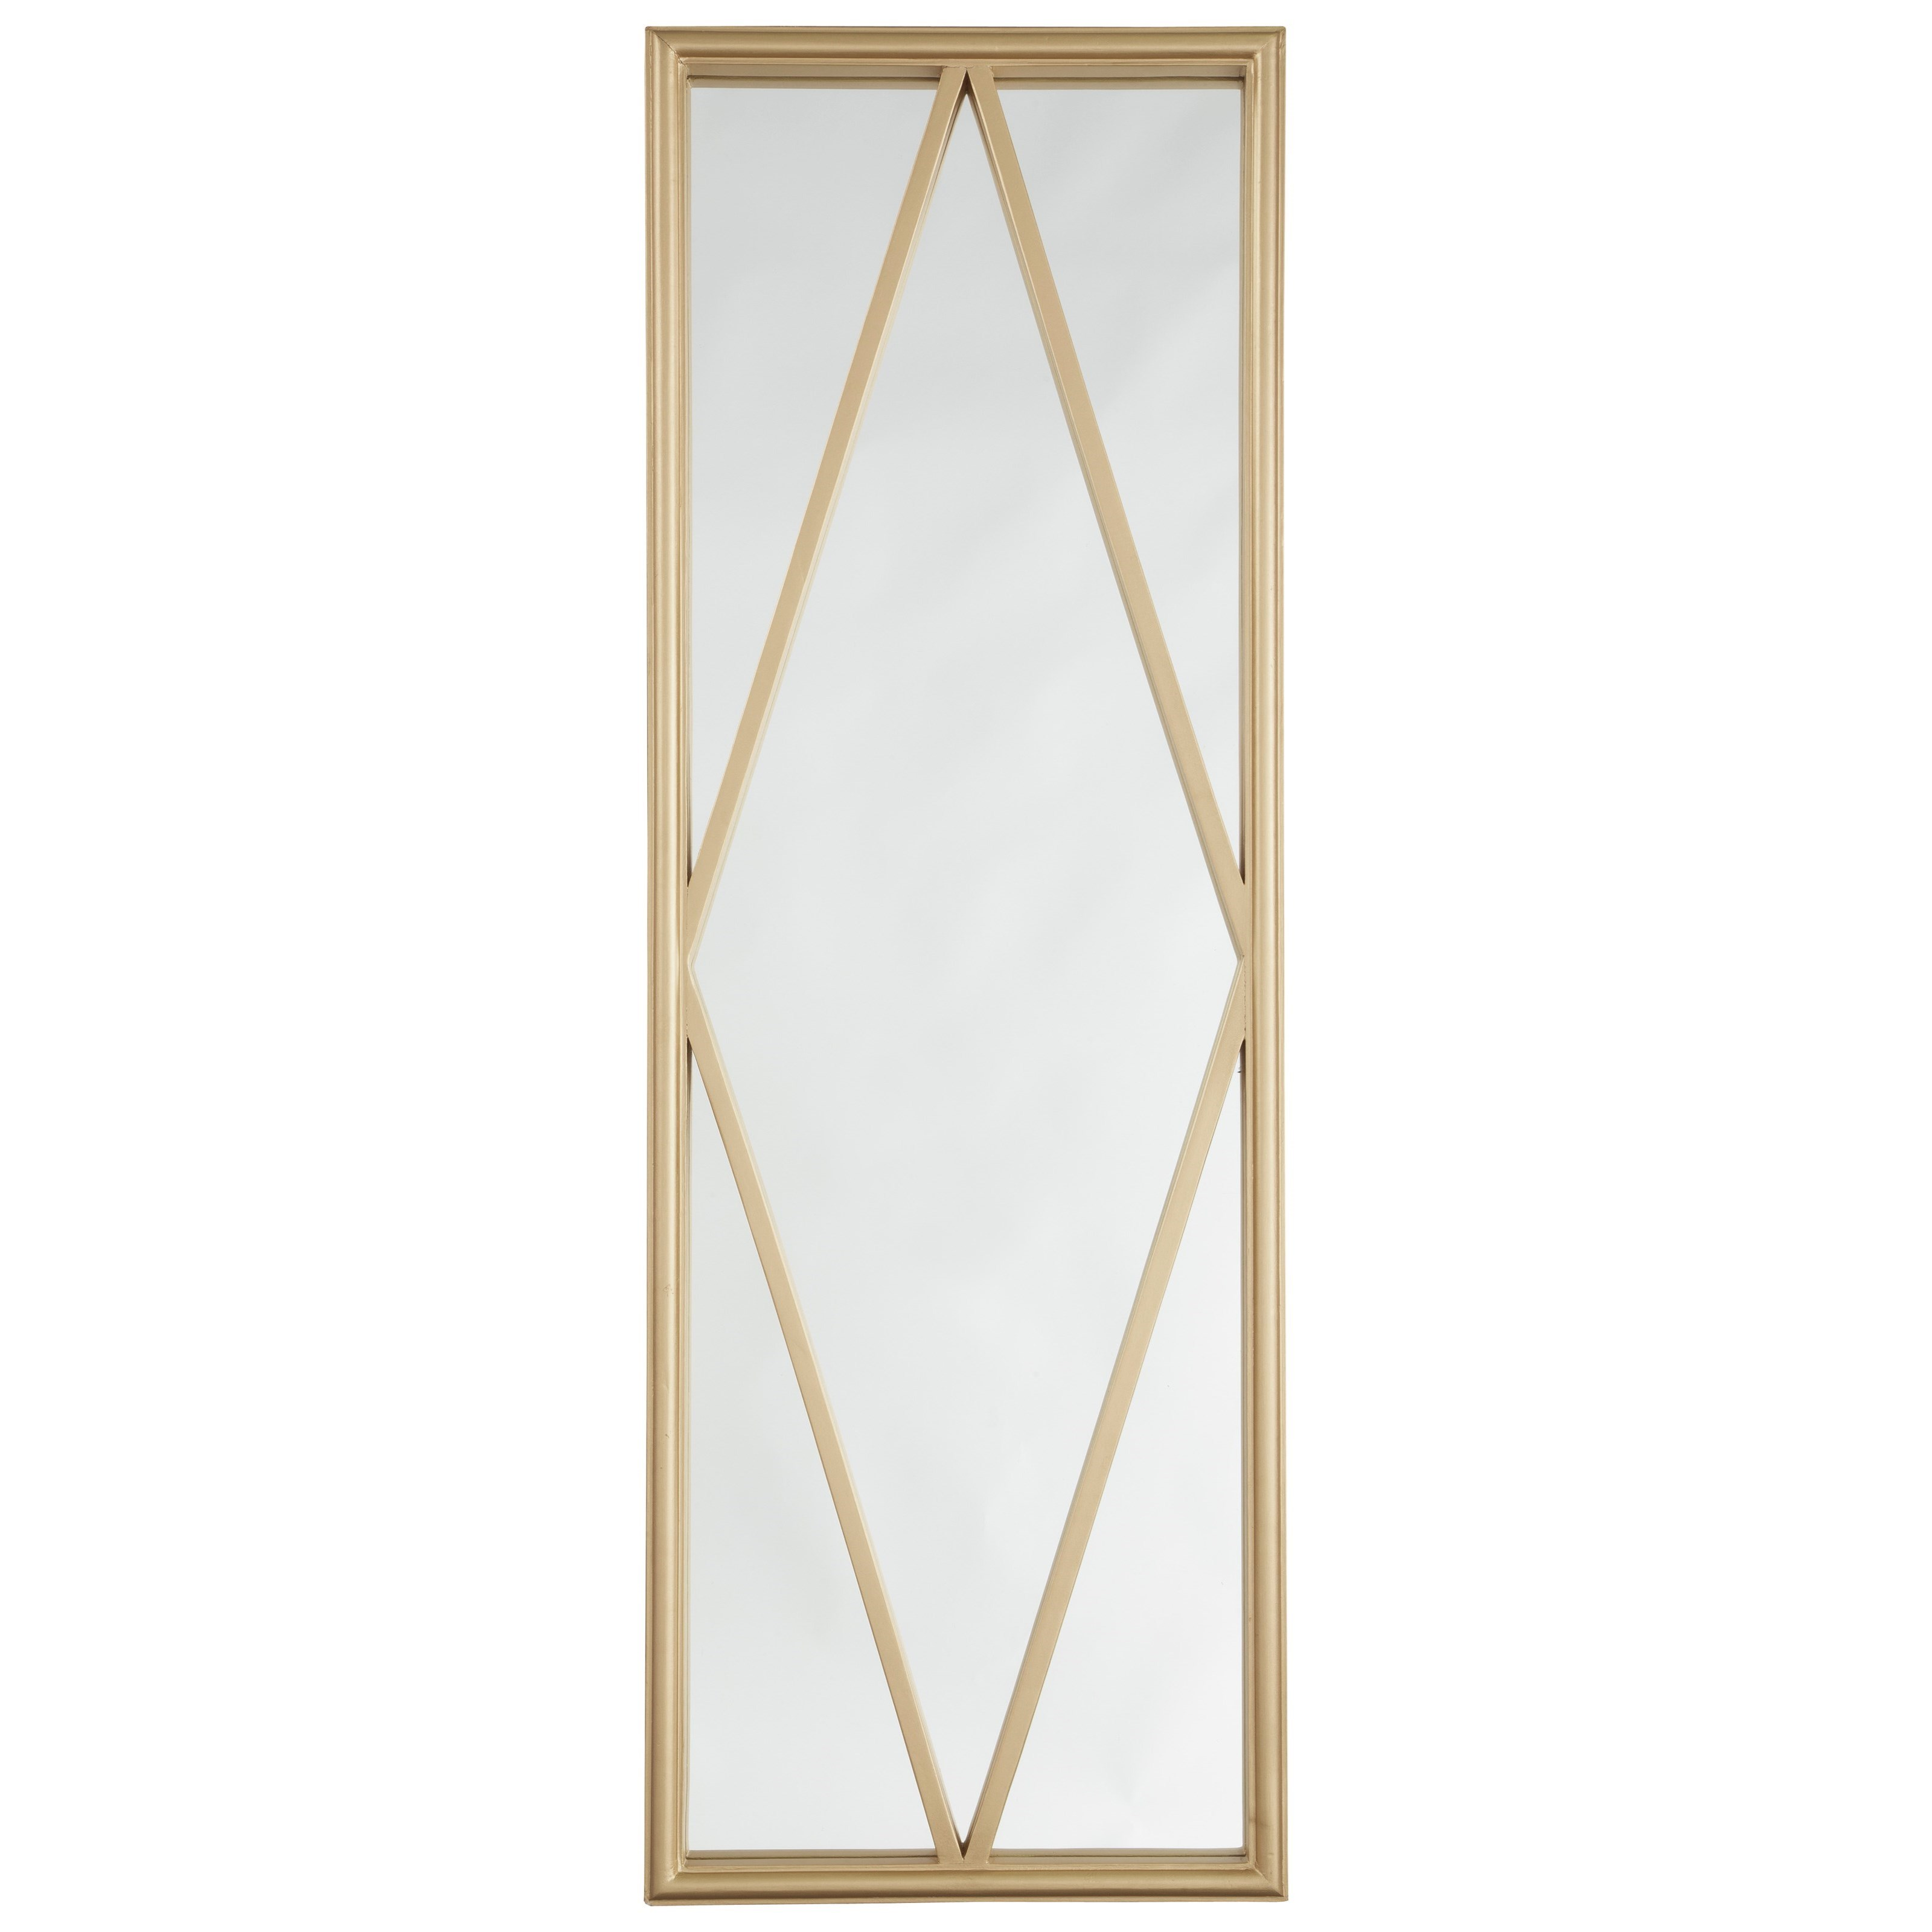 Signature Design by Ashley Accent Mirrors Offa Gold Finish Accent Mirror - Item Number: A8010032